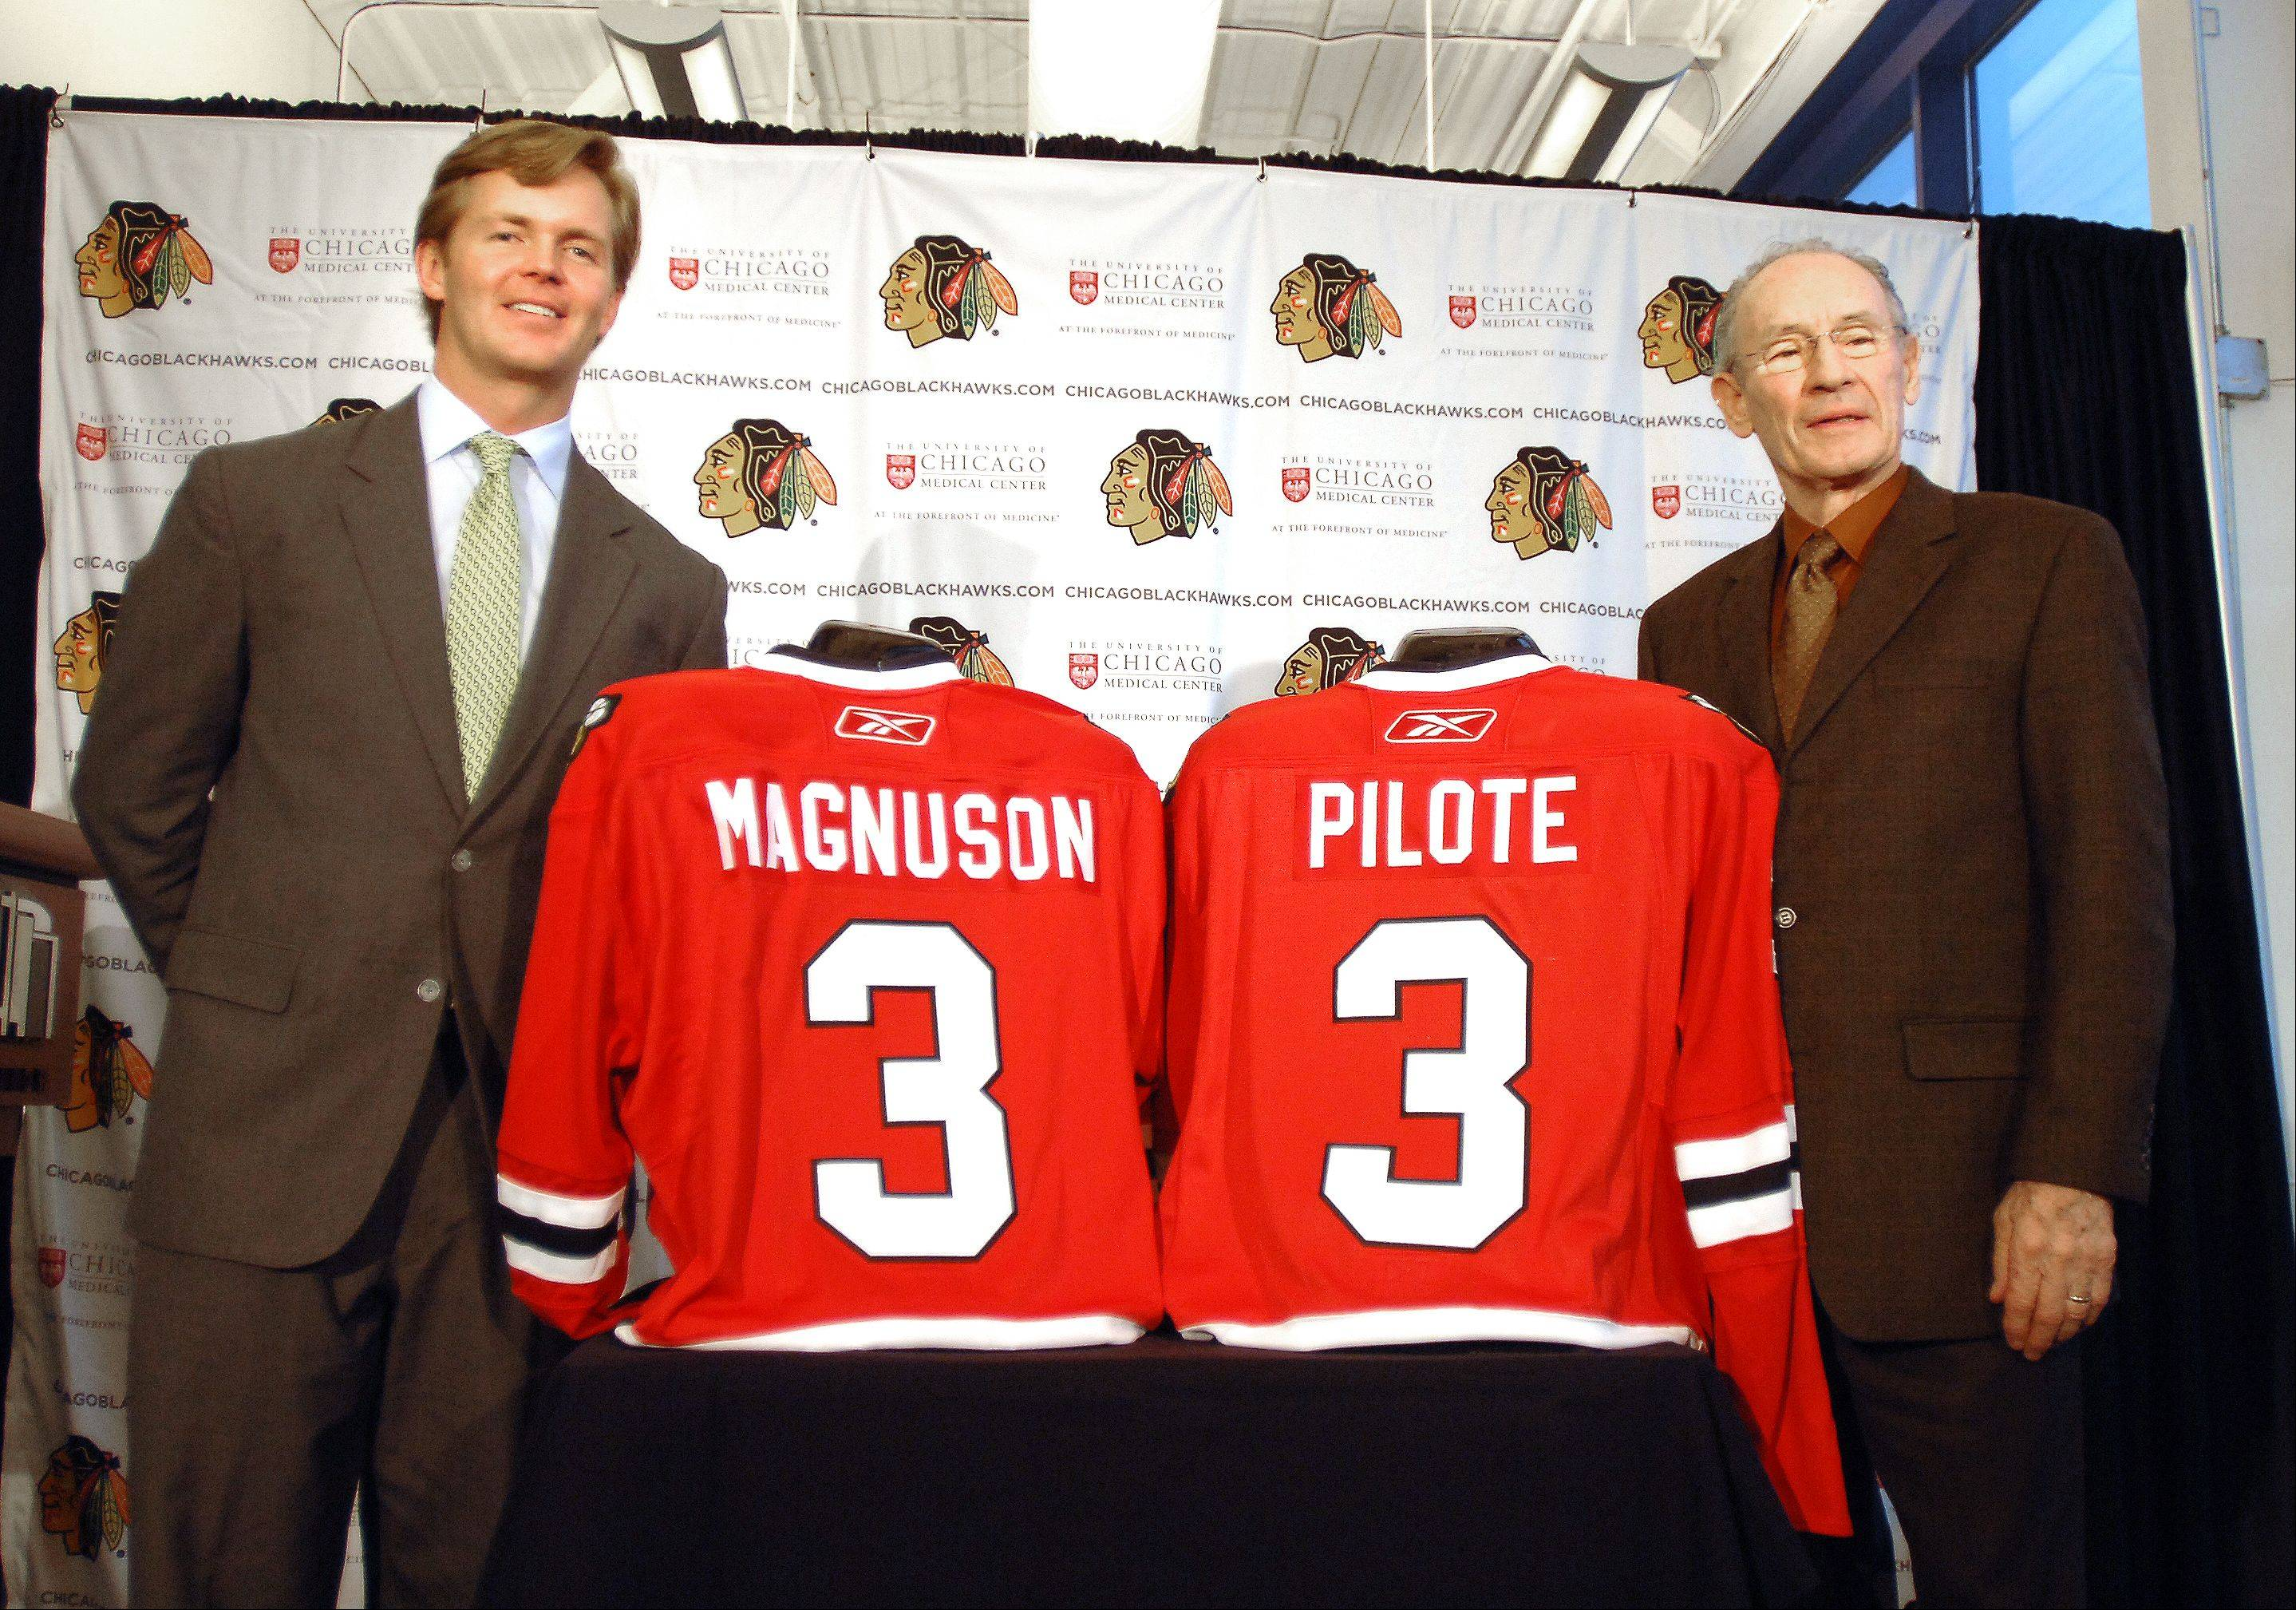 Kevin Magnuson, the son of late Keith Magnuson, and former Hawks captain Pierre Pilote pose with the retired No. 3 jerseys.